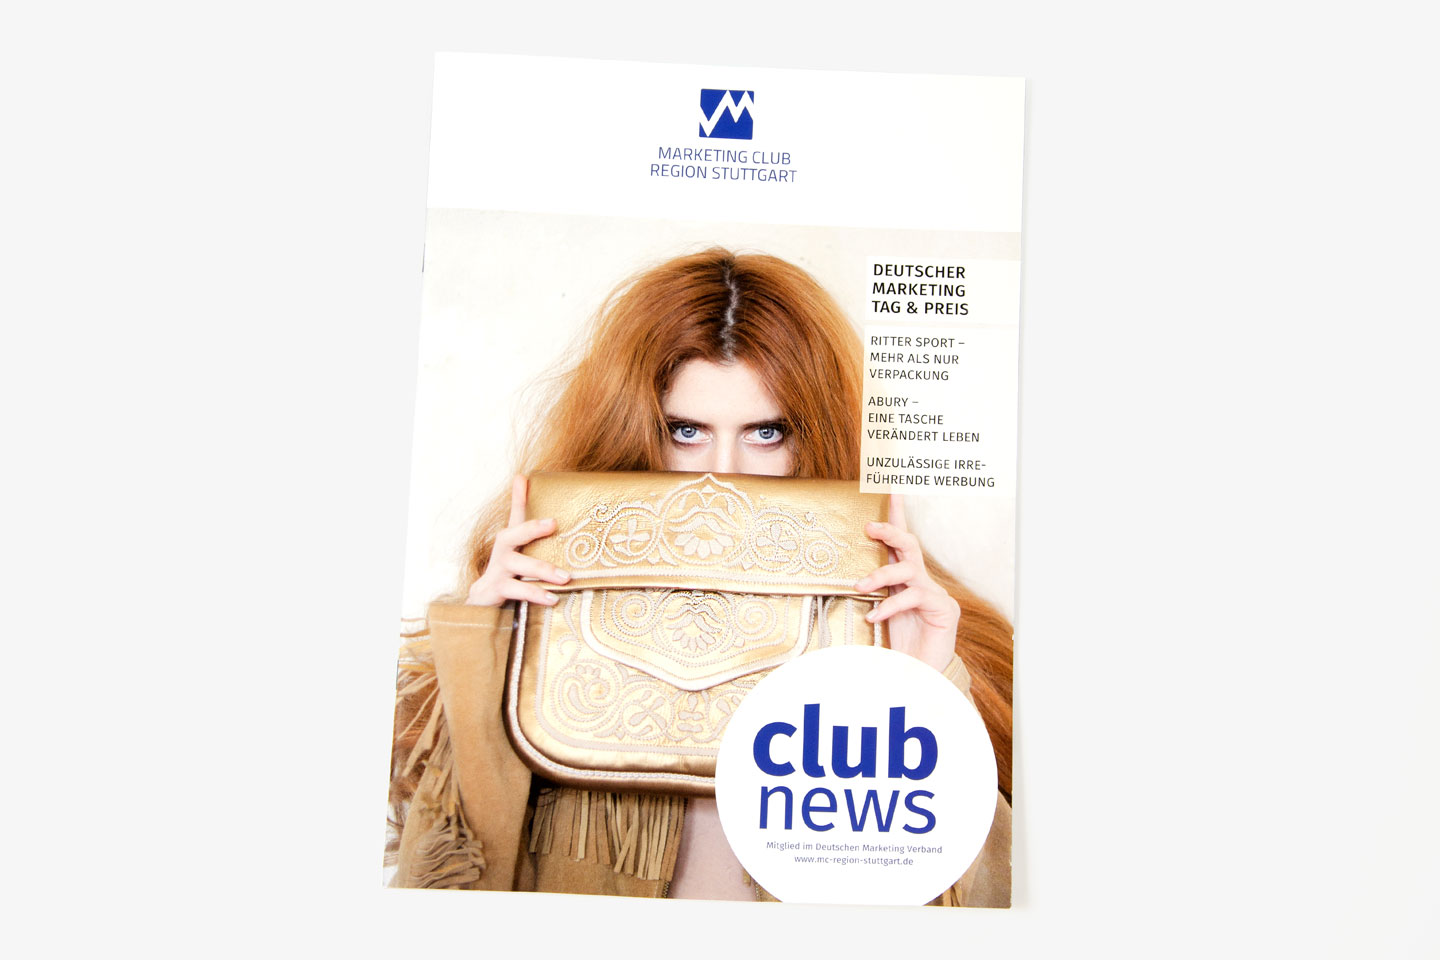 Langenstein Markencases: Marketing Club